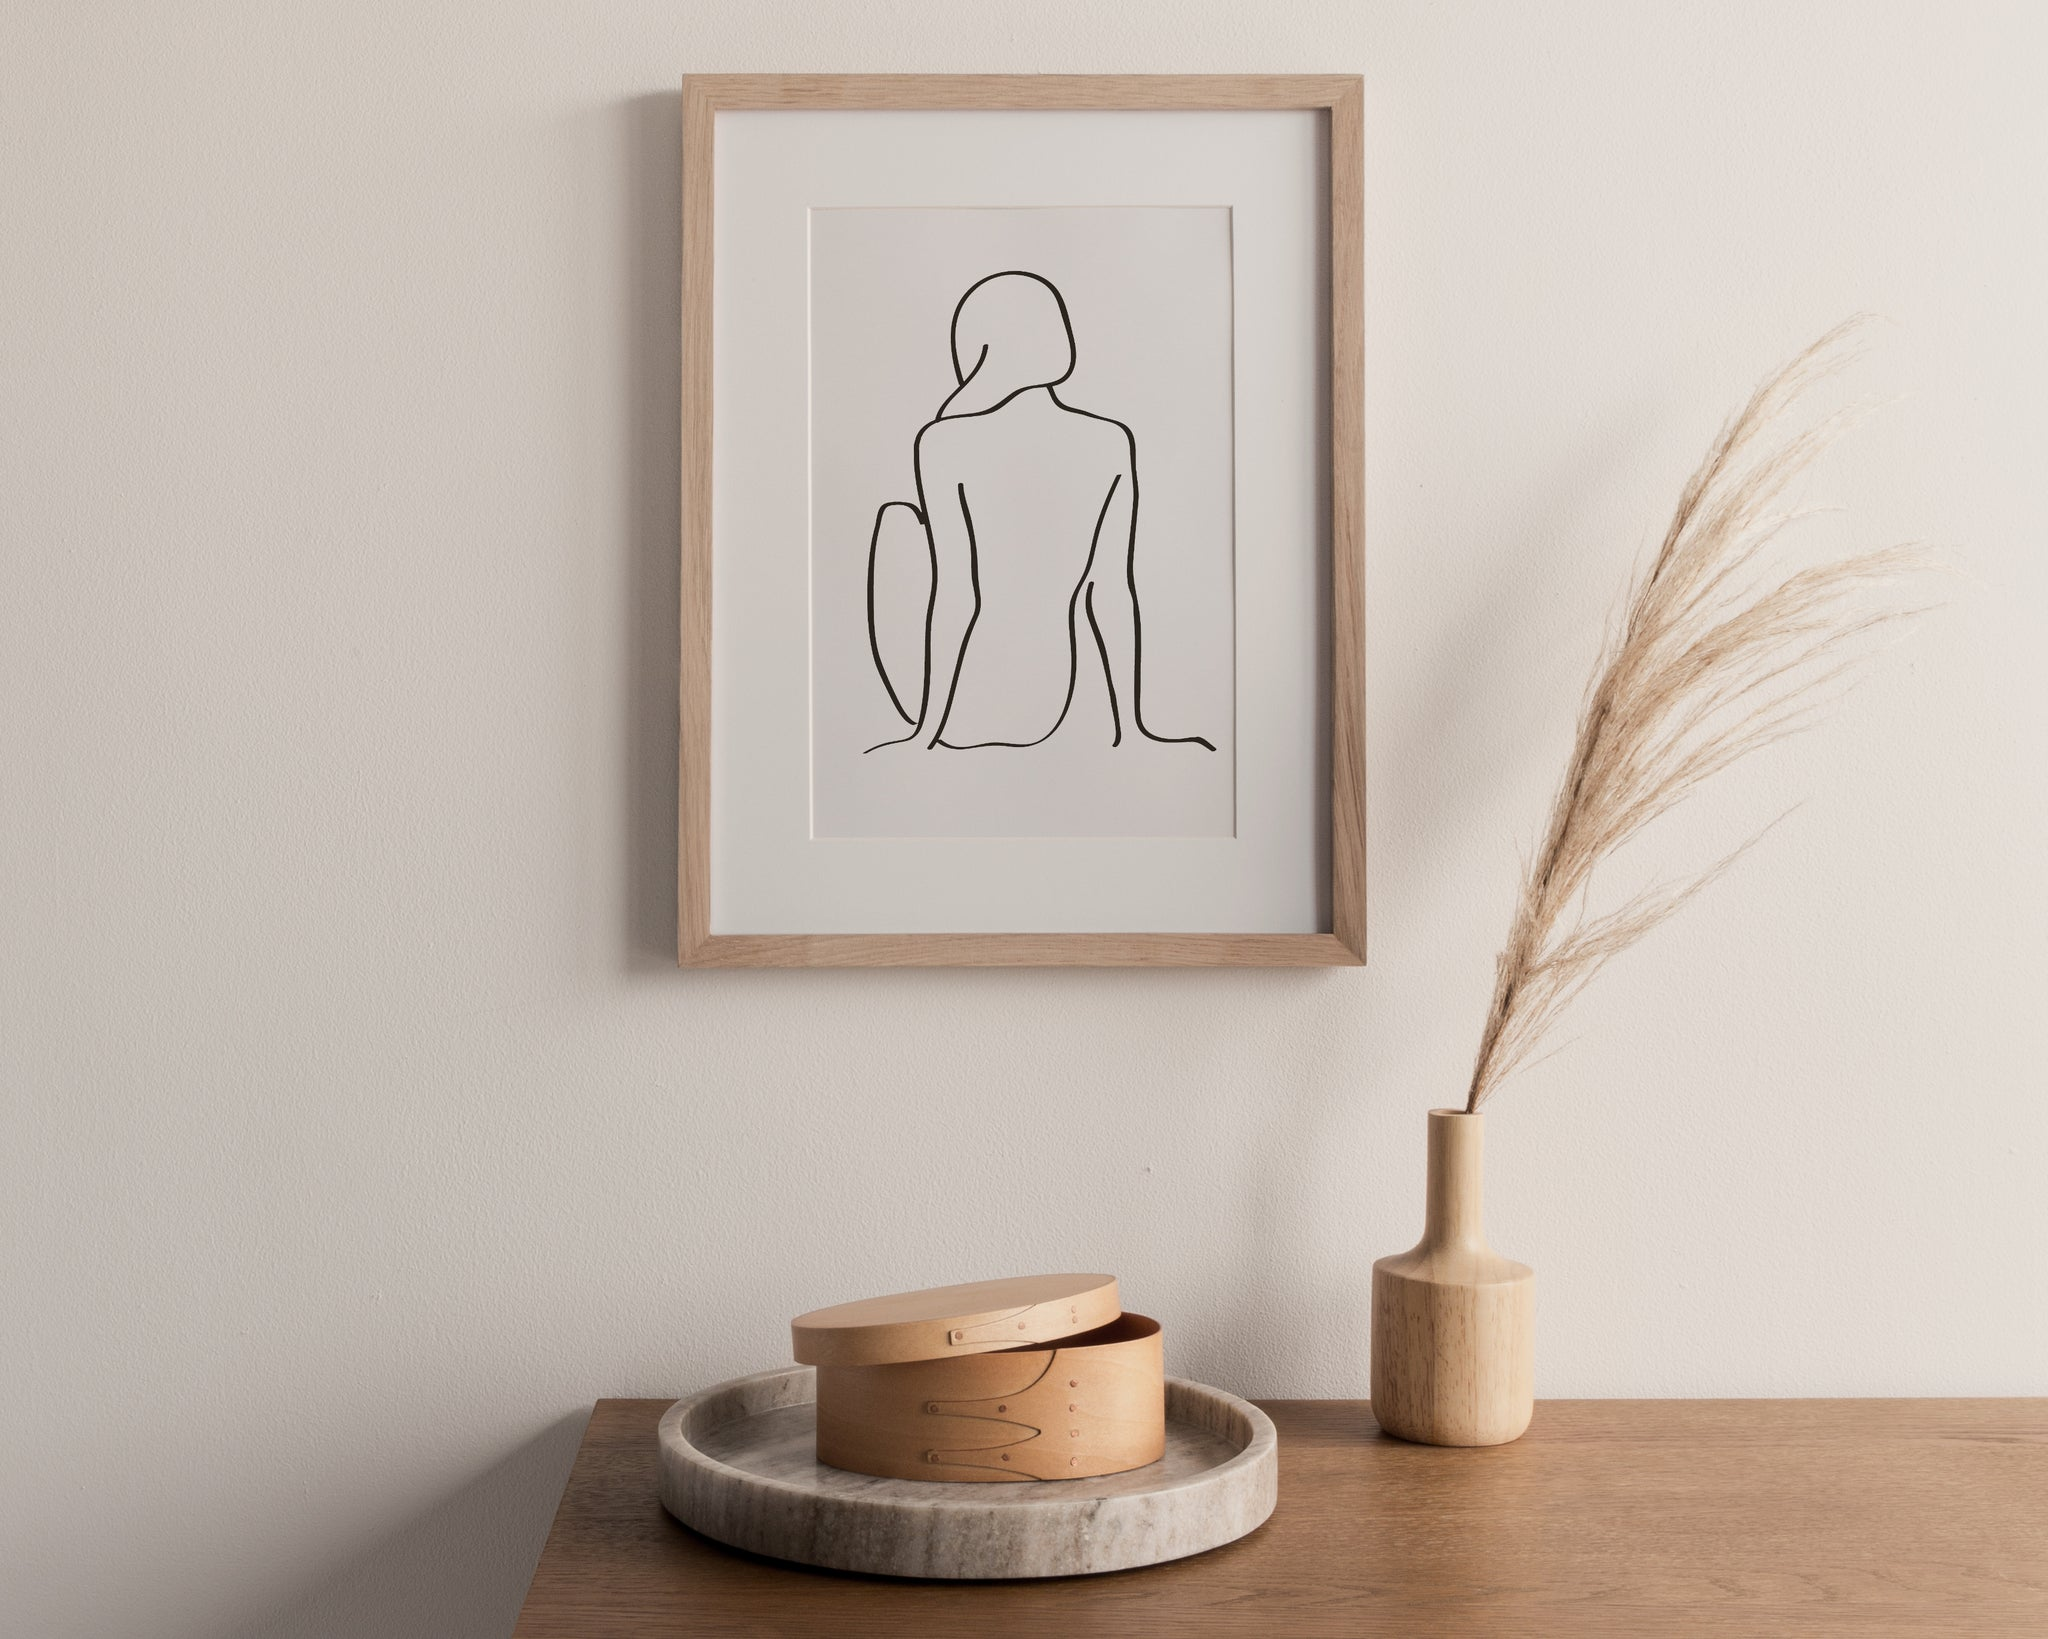 framed print of a drawing of a girl sitting. frame on a cream wall with table below